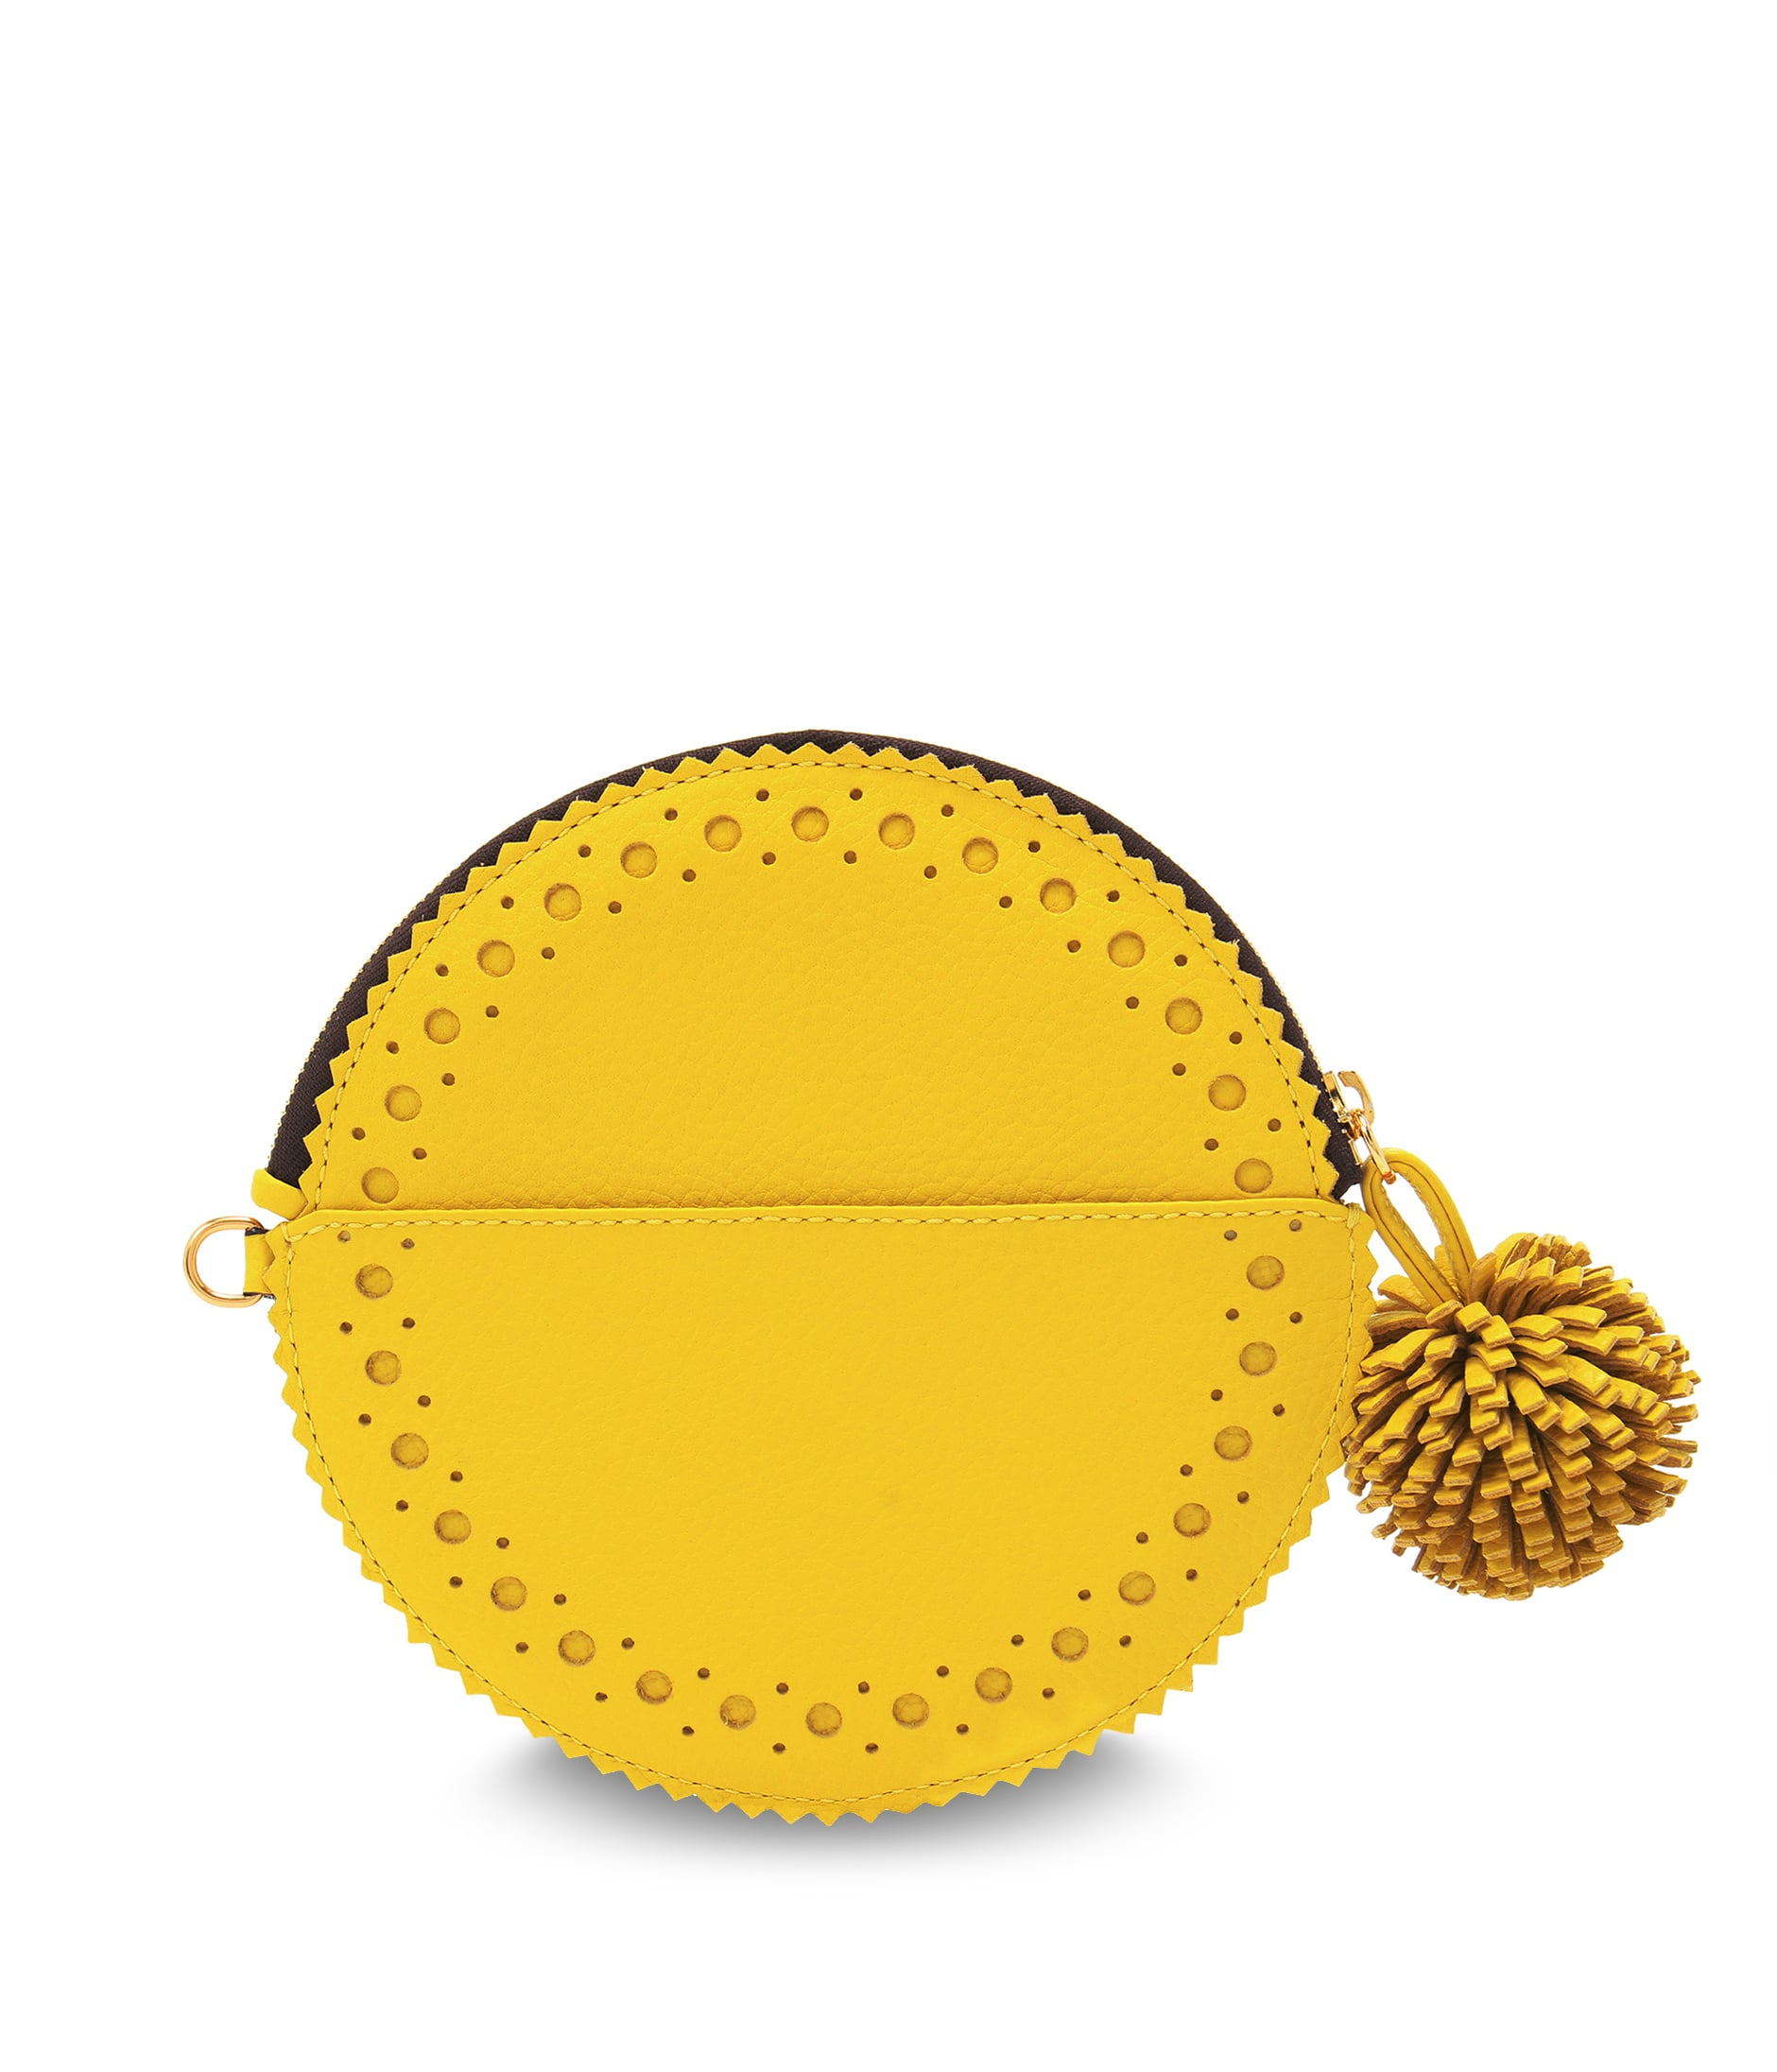 CIRCLE PURSE WITH POMPOM 詳細画像 ACACIA YELLOW 2